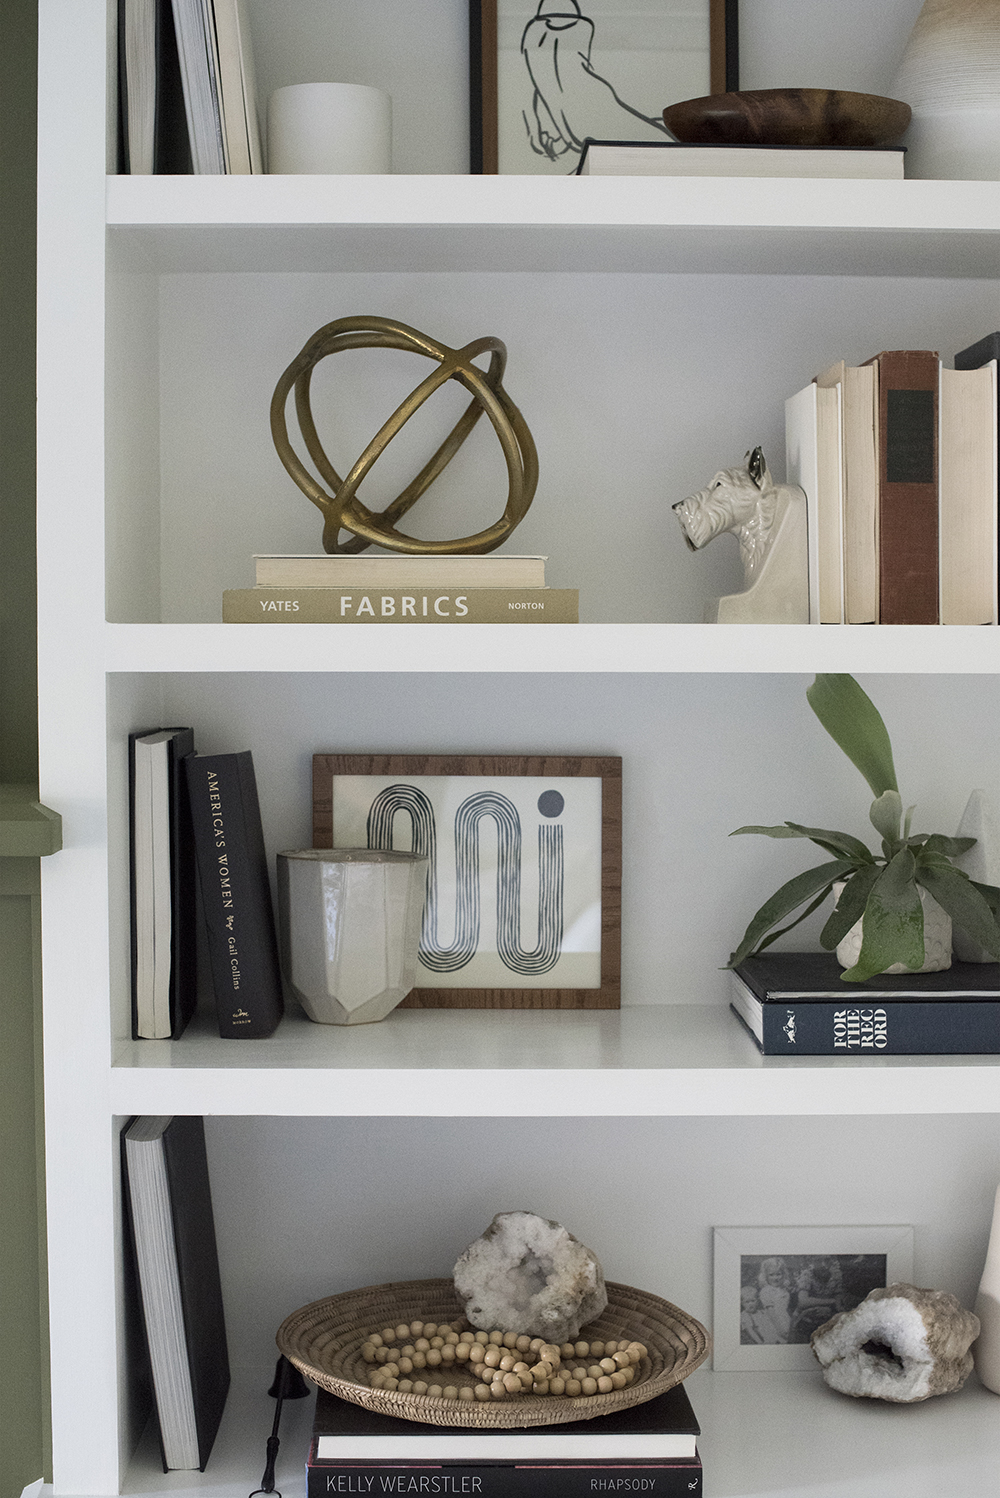 Amazon Decor and Shelf Styling Objects